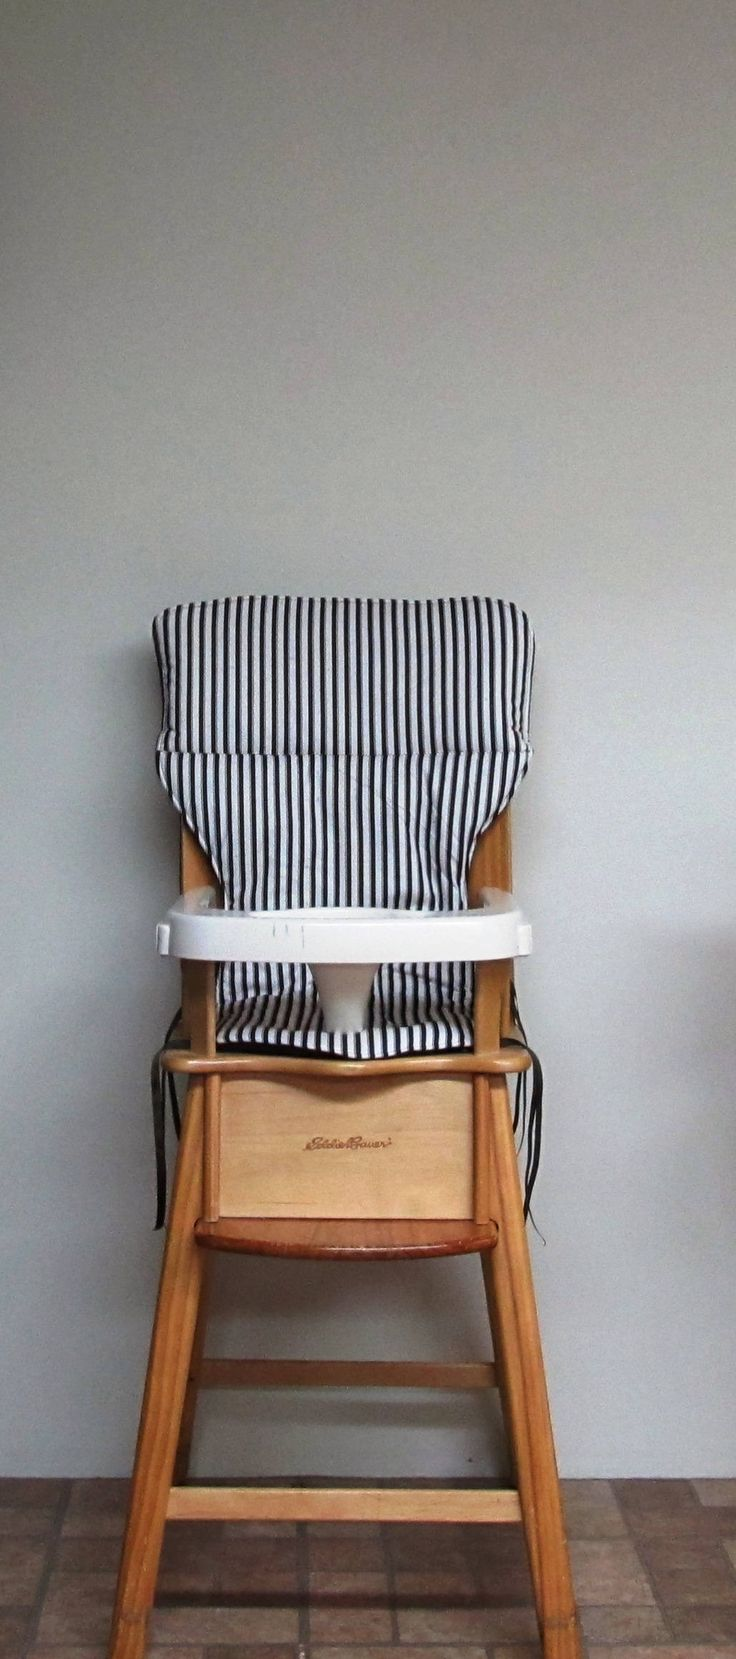 eddie bauer highchair pad, baby accessory, cushion, replacement chair pad, nursery decor, baby feeding chair pad, jenny lind, brown stripes by SewingsillySister on Etsy